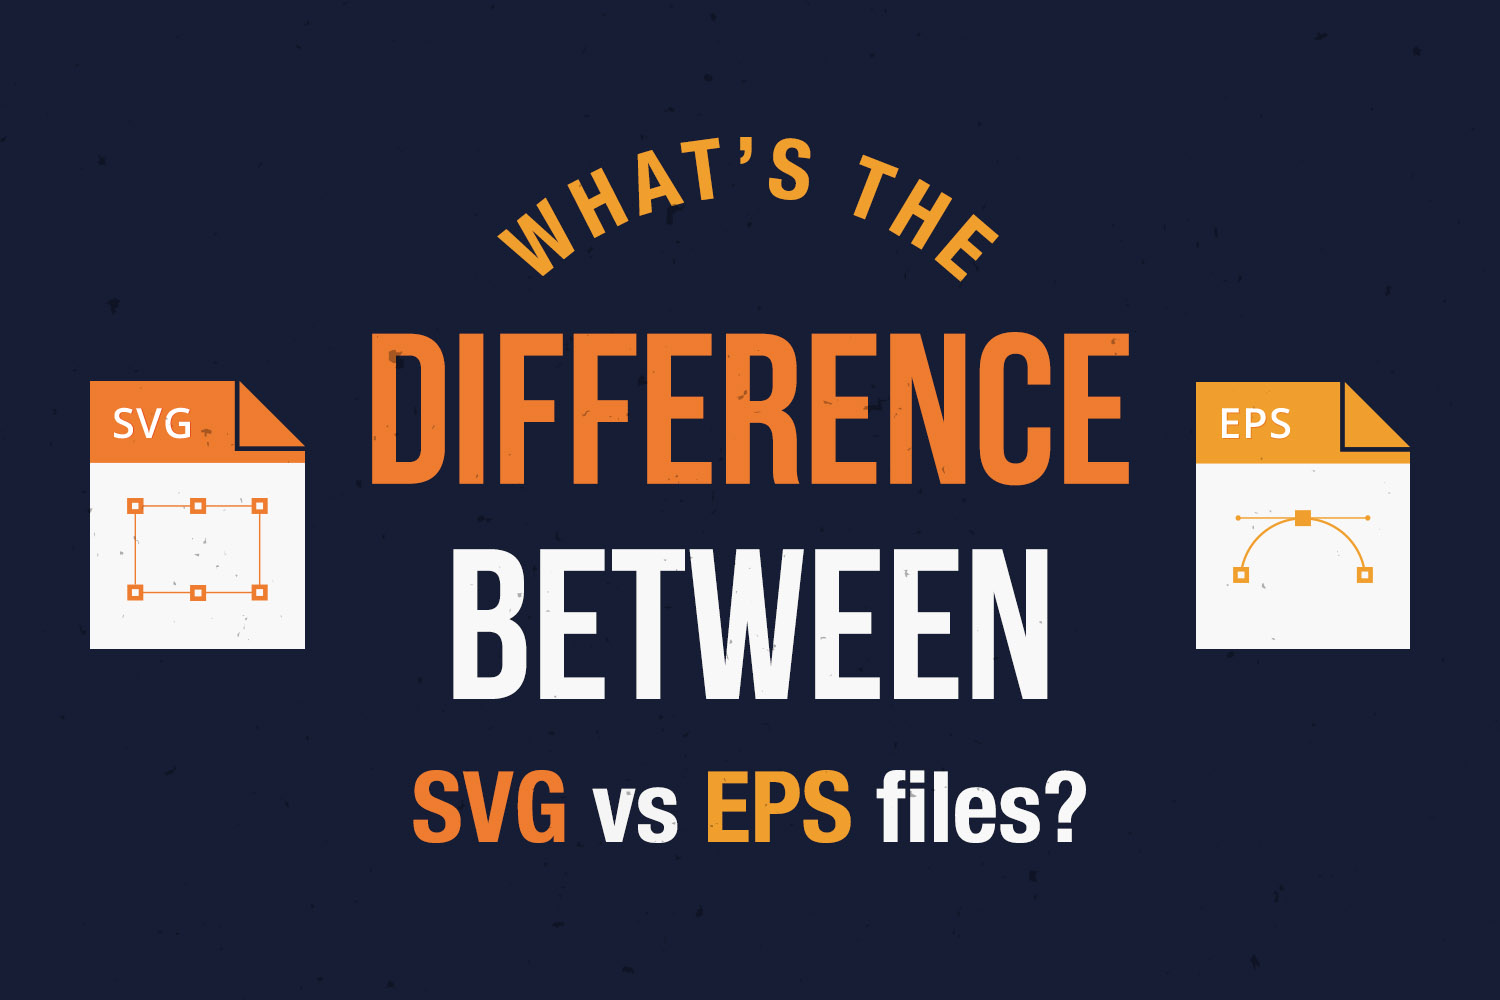 What's the difference between SVG vs EPS files?